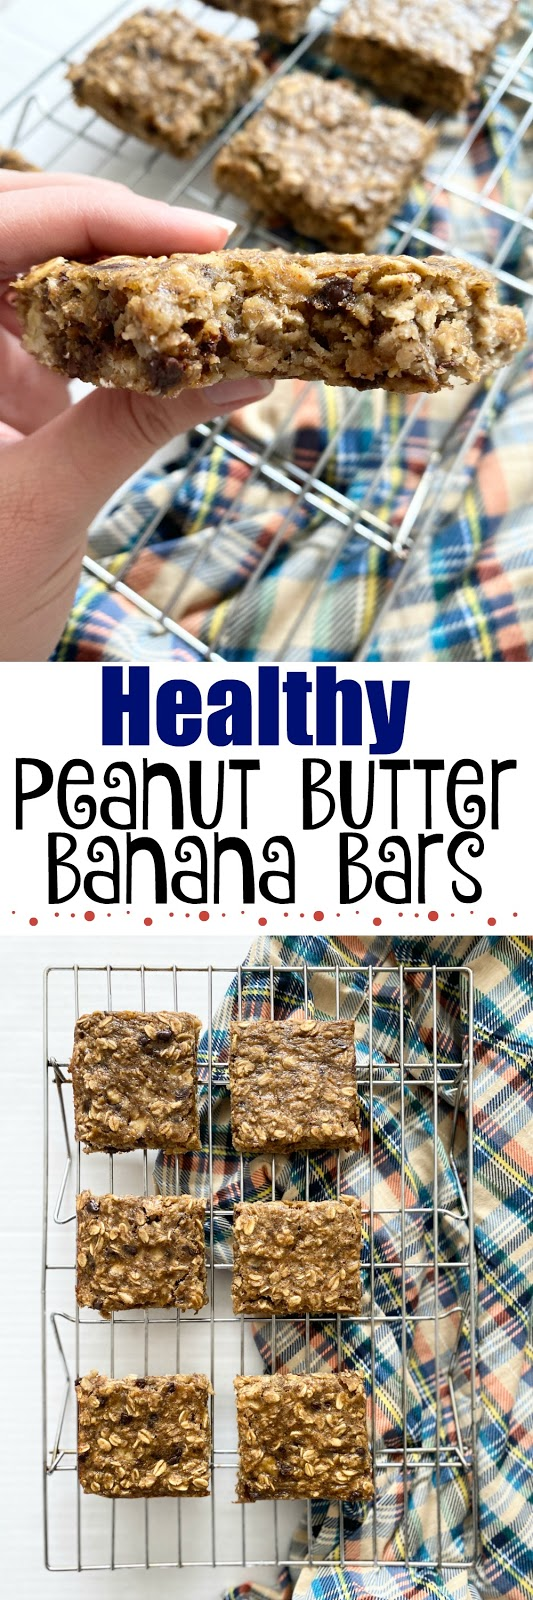 health peanut butter banana bars